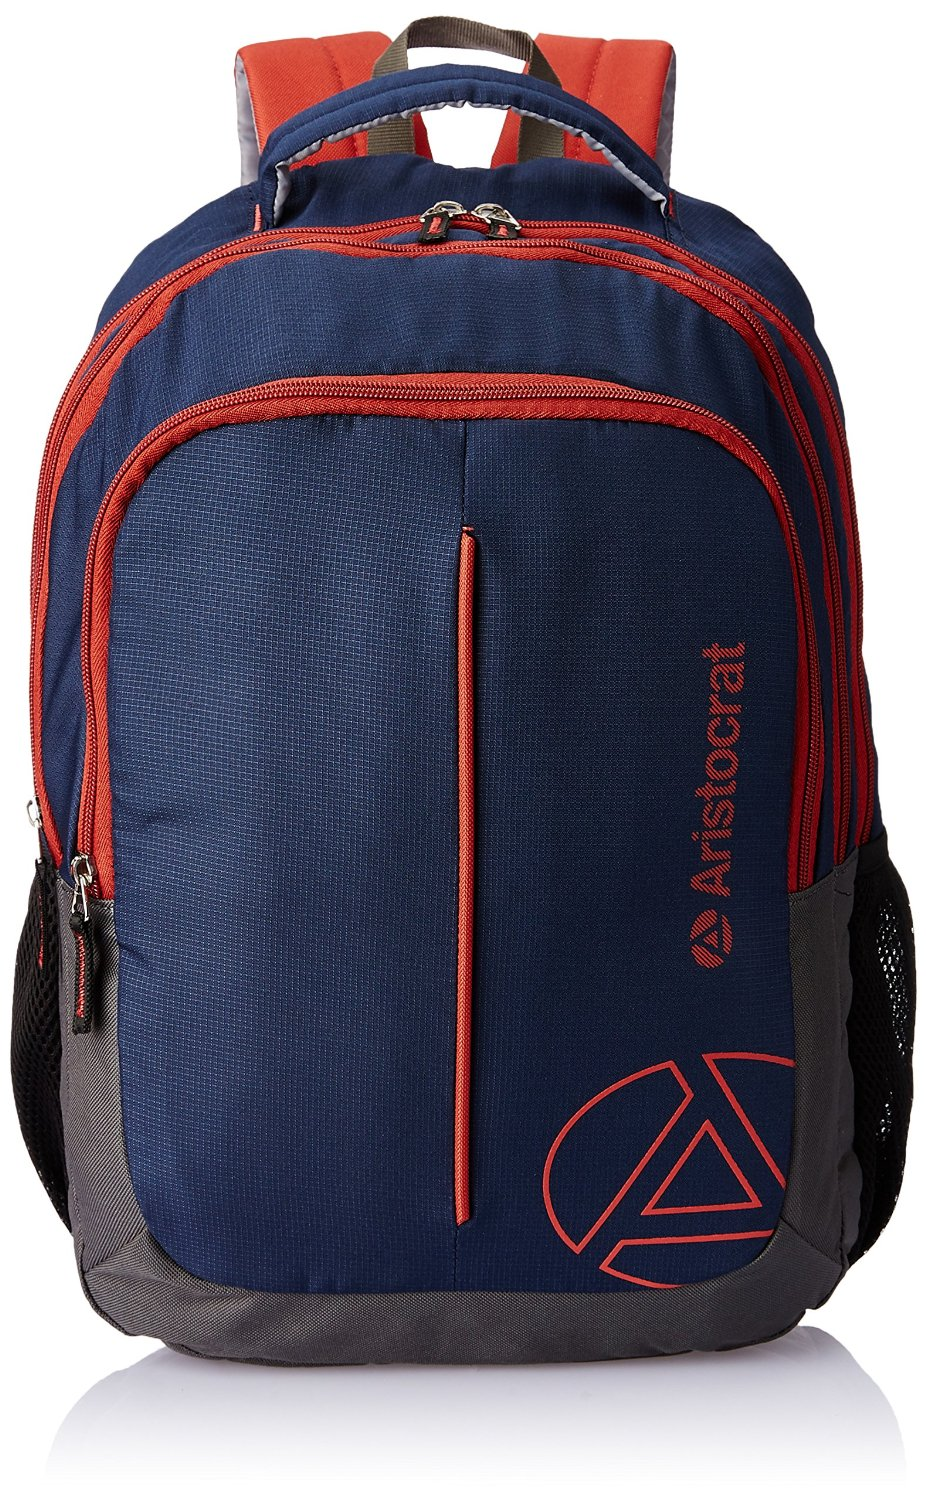 Backpack Online Lowest Price